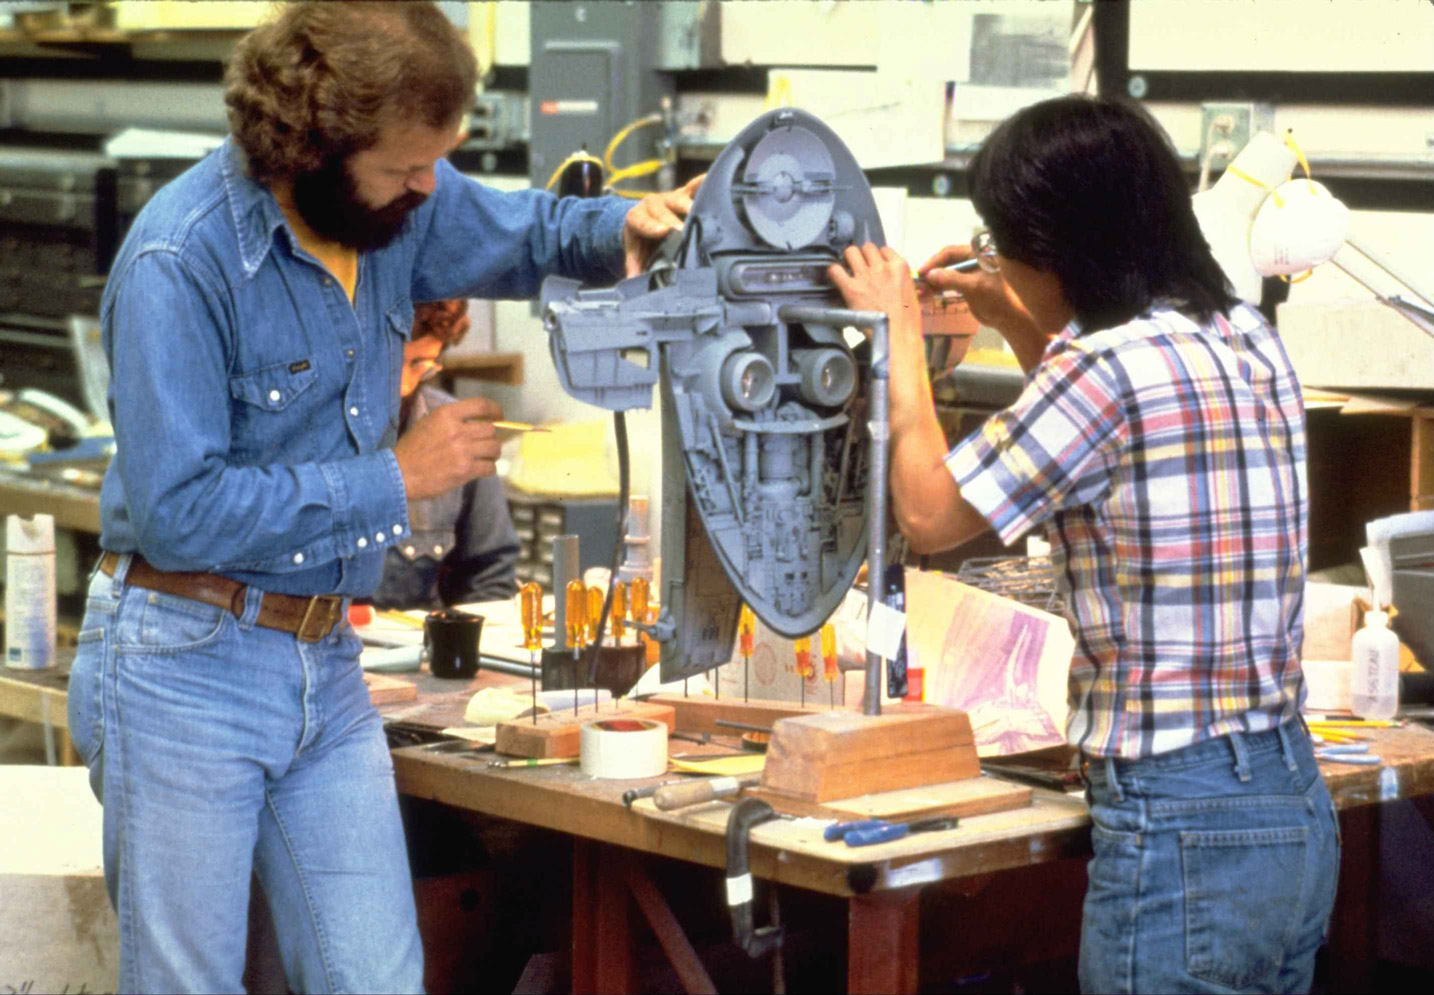 Model makers Lorne Peterson & Ease Owyeung creating Boba Fett's 'Slave I' space ship (image: LucasFilm).